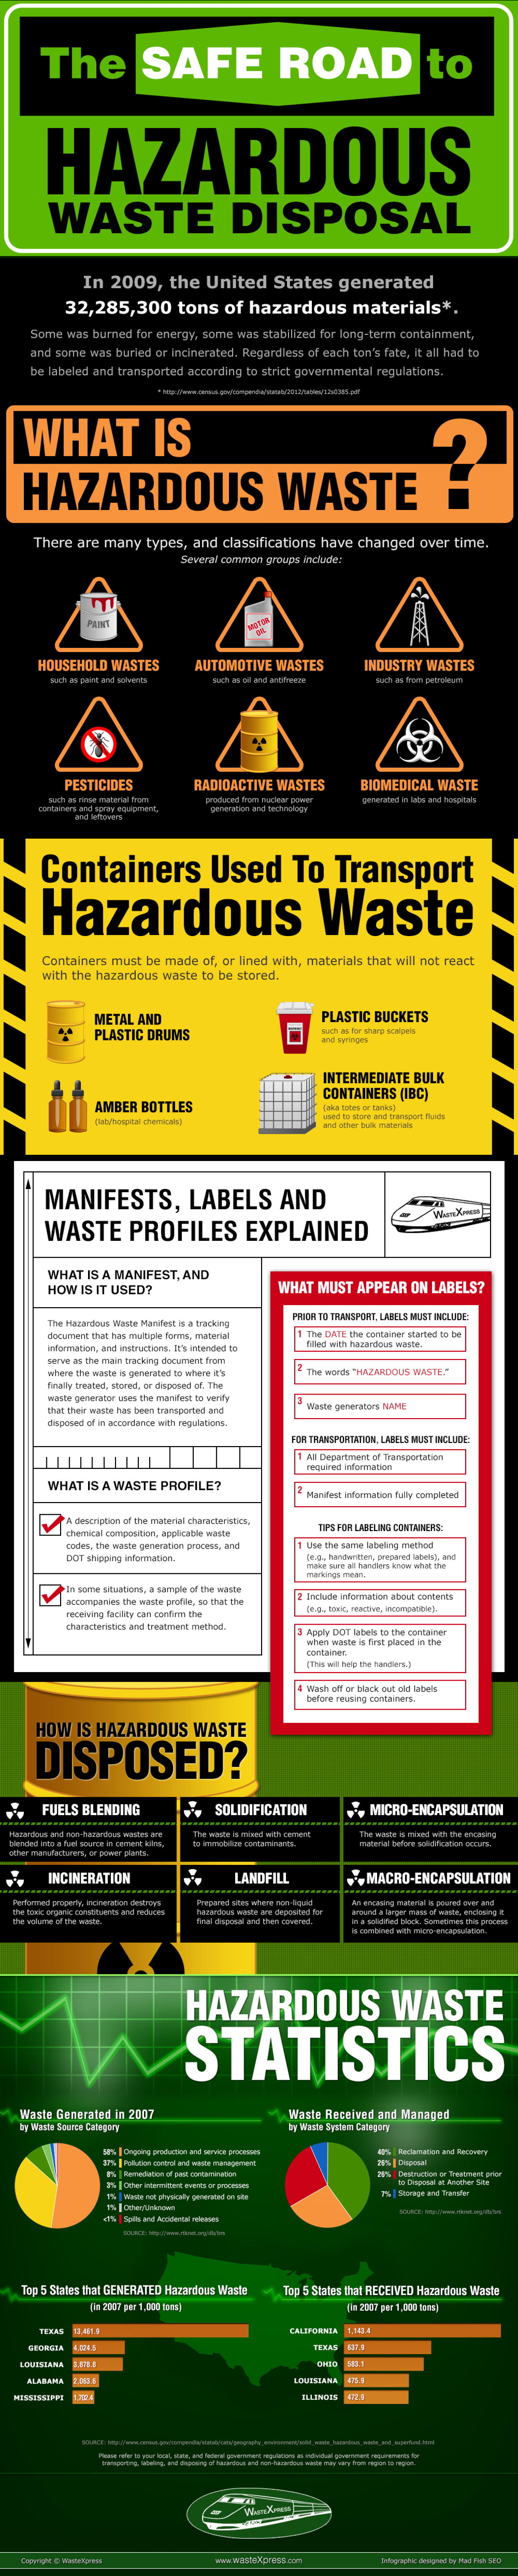 Get the Facts on Hazardous Waste Disposal Infographic